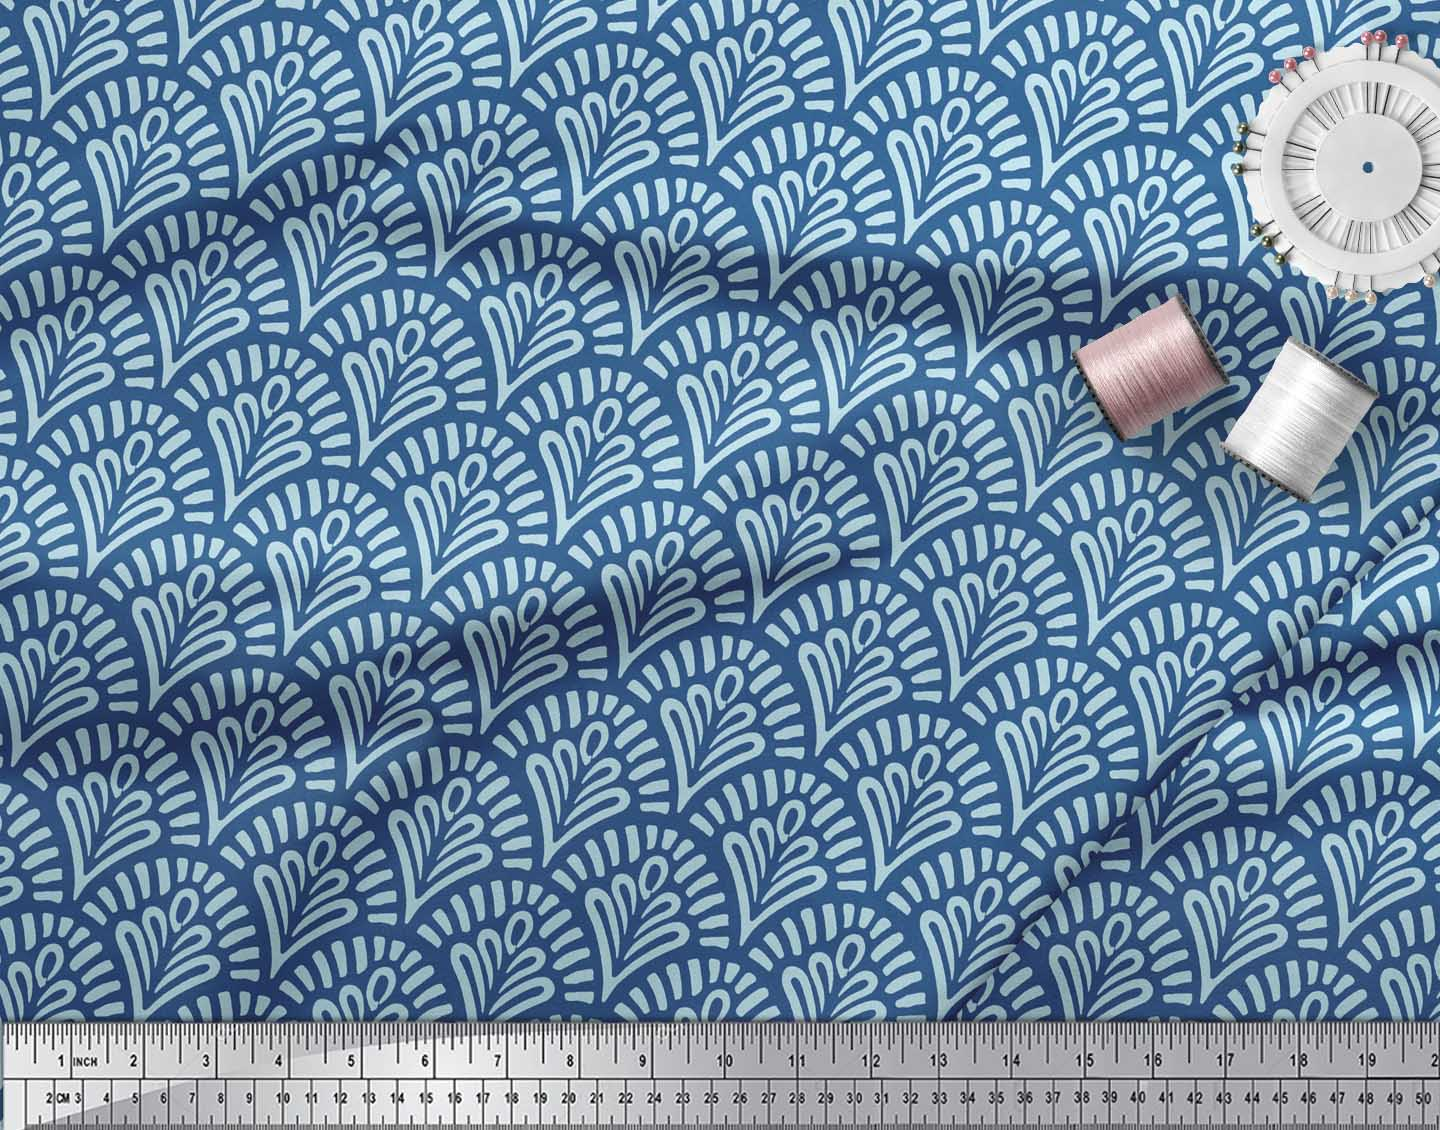 Soimoi-Blue-Cotton-Poplin-Fabric-Floral-Damask-Print-Sewing-Fabric-PmC thumbnail 4